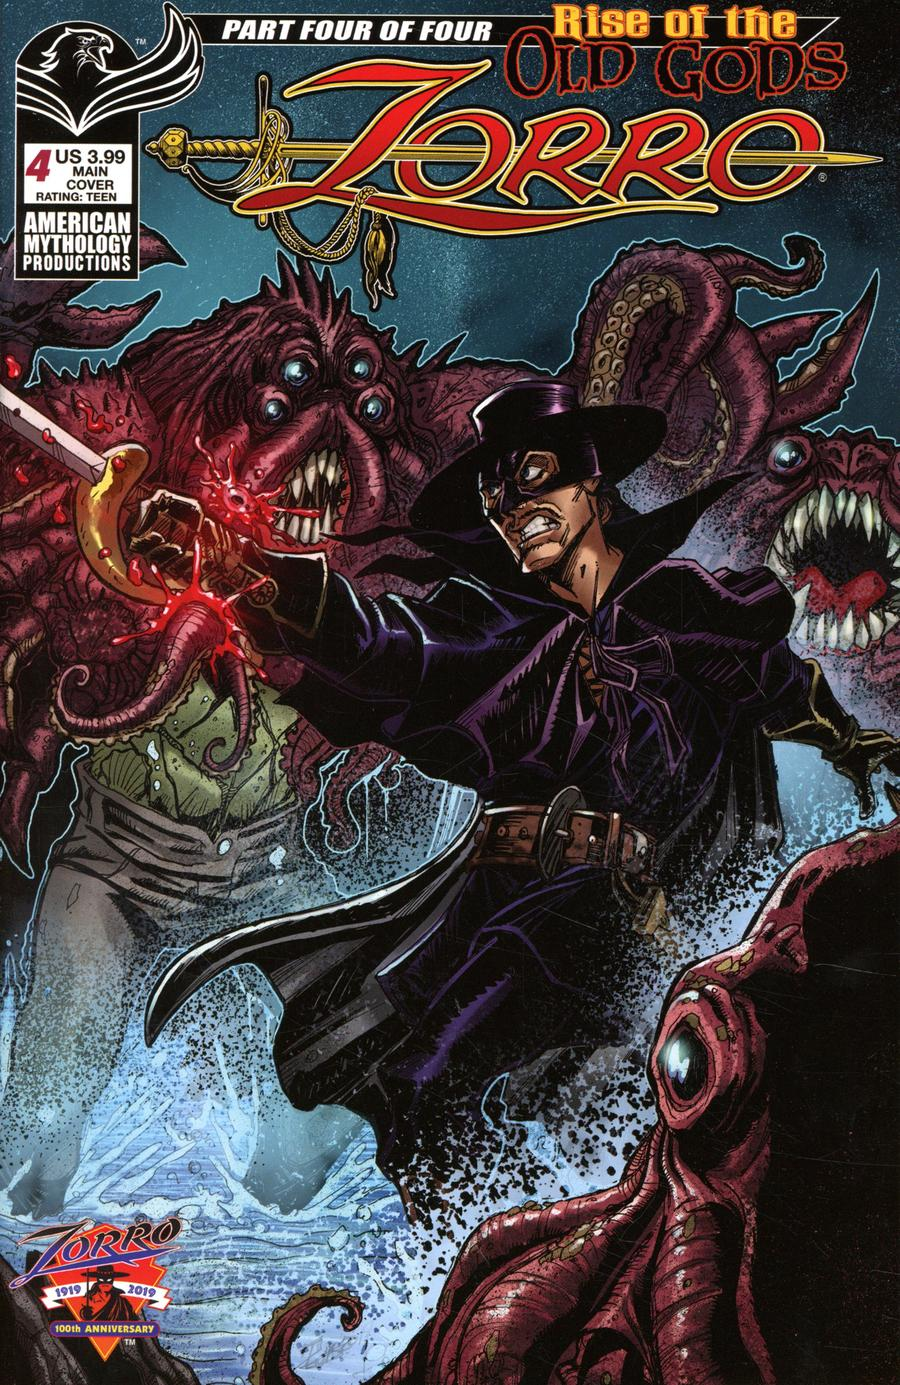 Zorro: Rise Of The Old Gods #4 (2020)